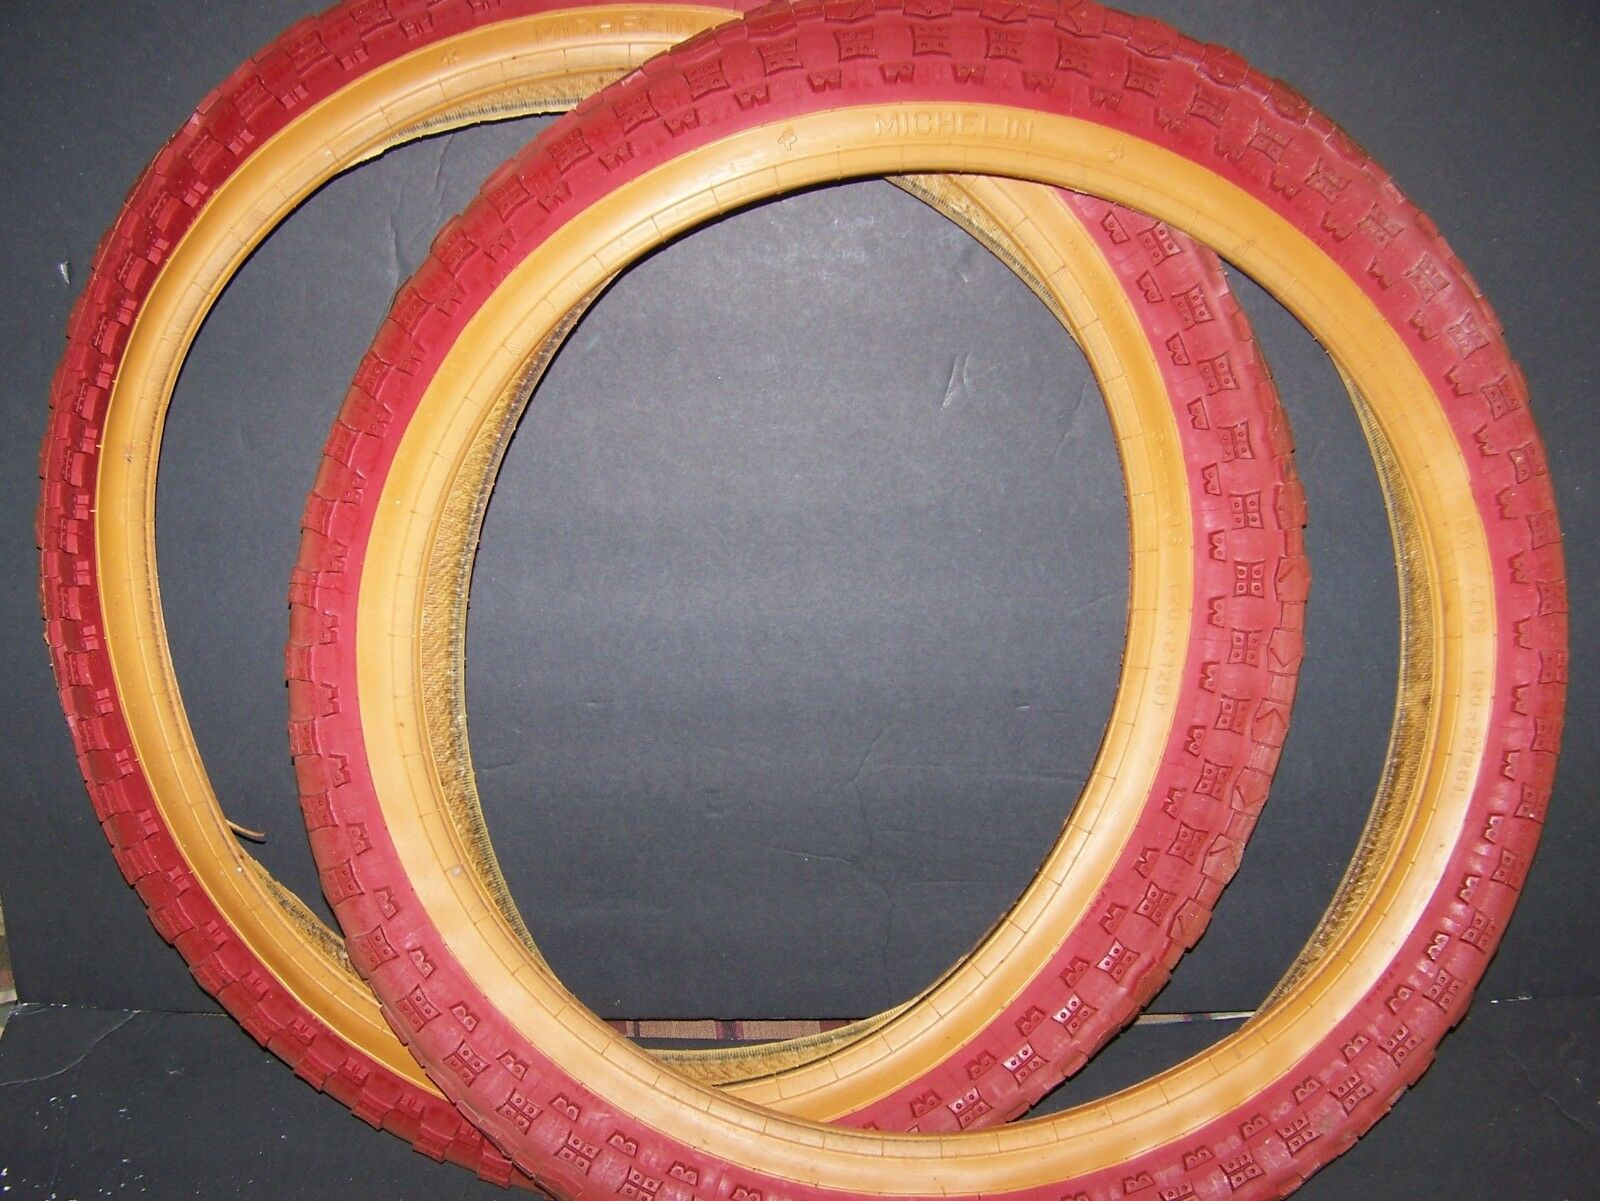 RARE VINTAGE MICHELIN COBRA TIRES  20 X 2.125 NEW  IN RED GUM WALL FROM 80'S  factory direct